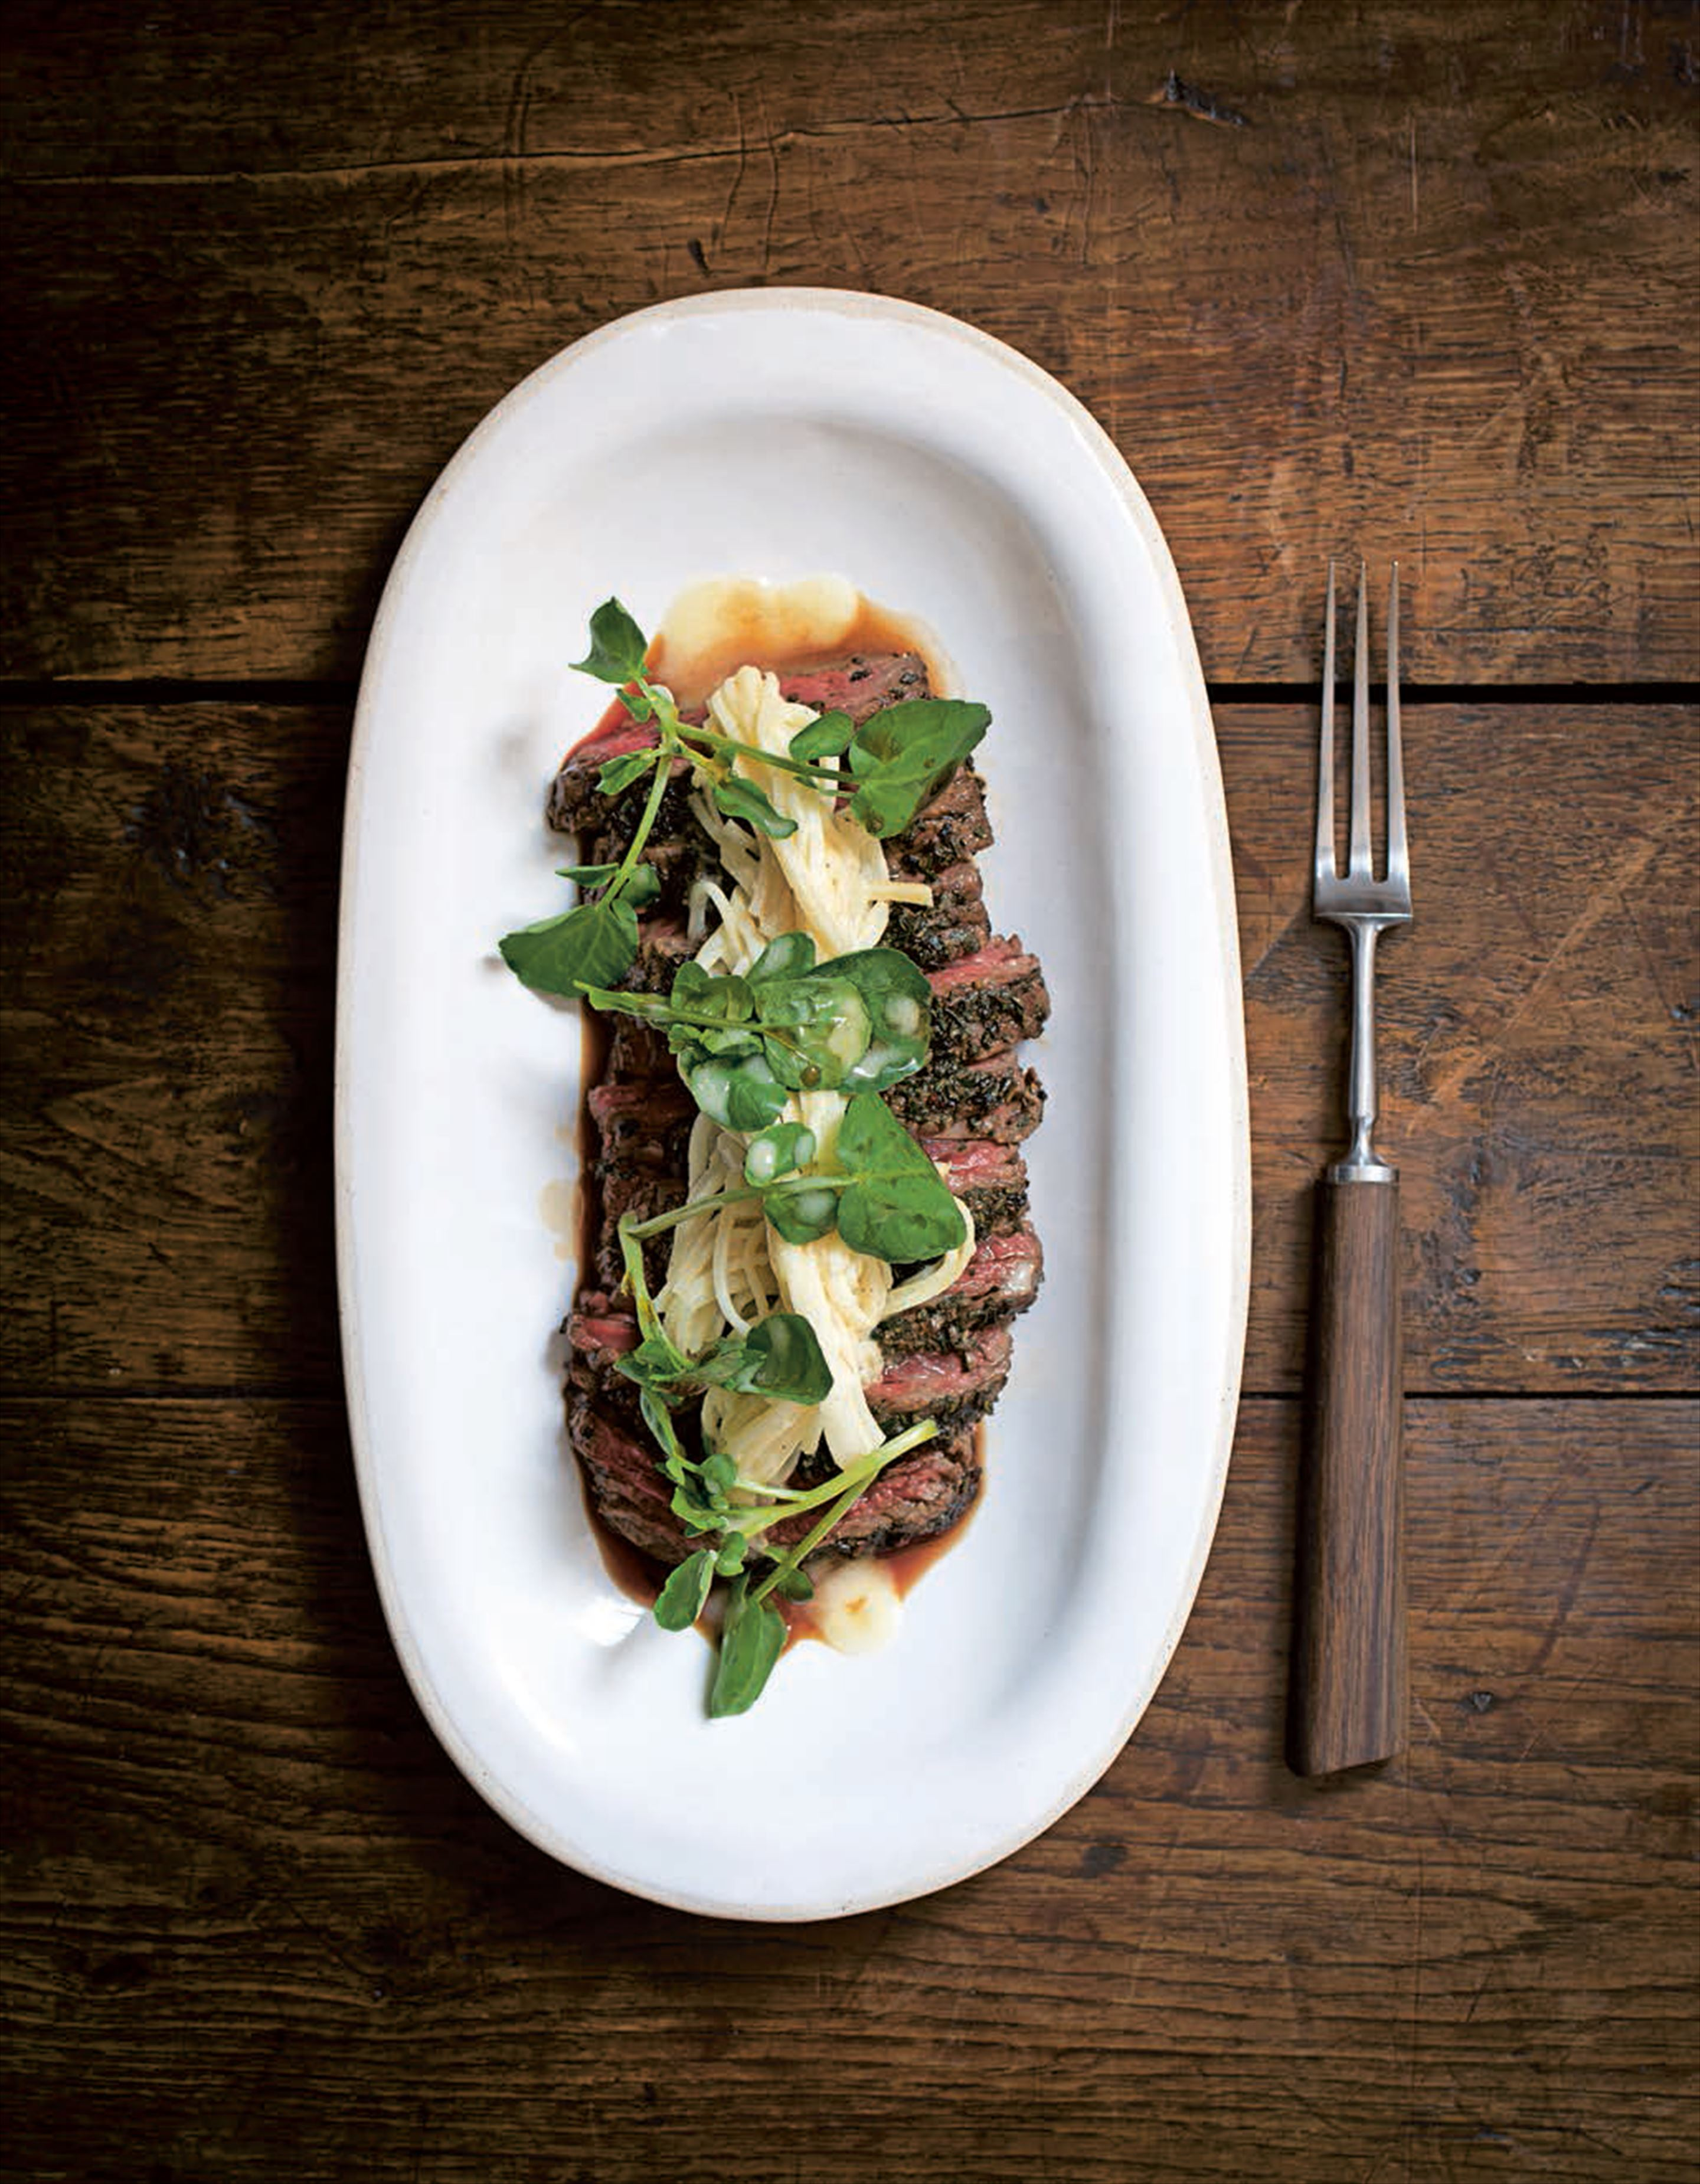 Garlic herb beef with kohlrabi remoulade and watercress